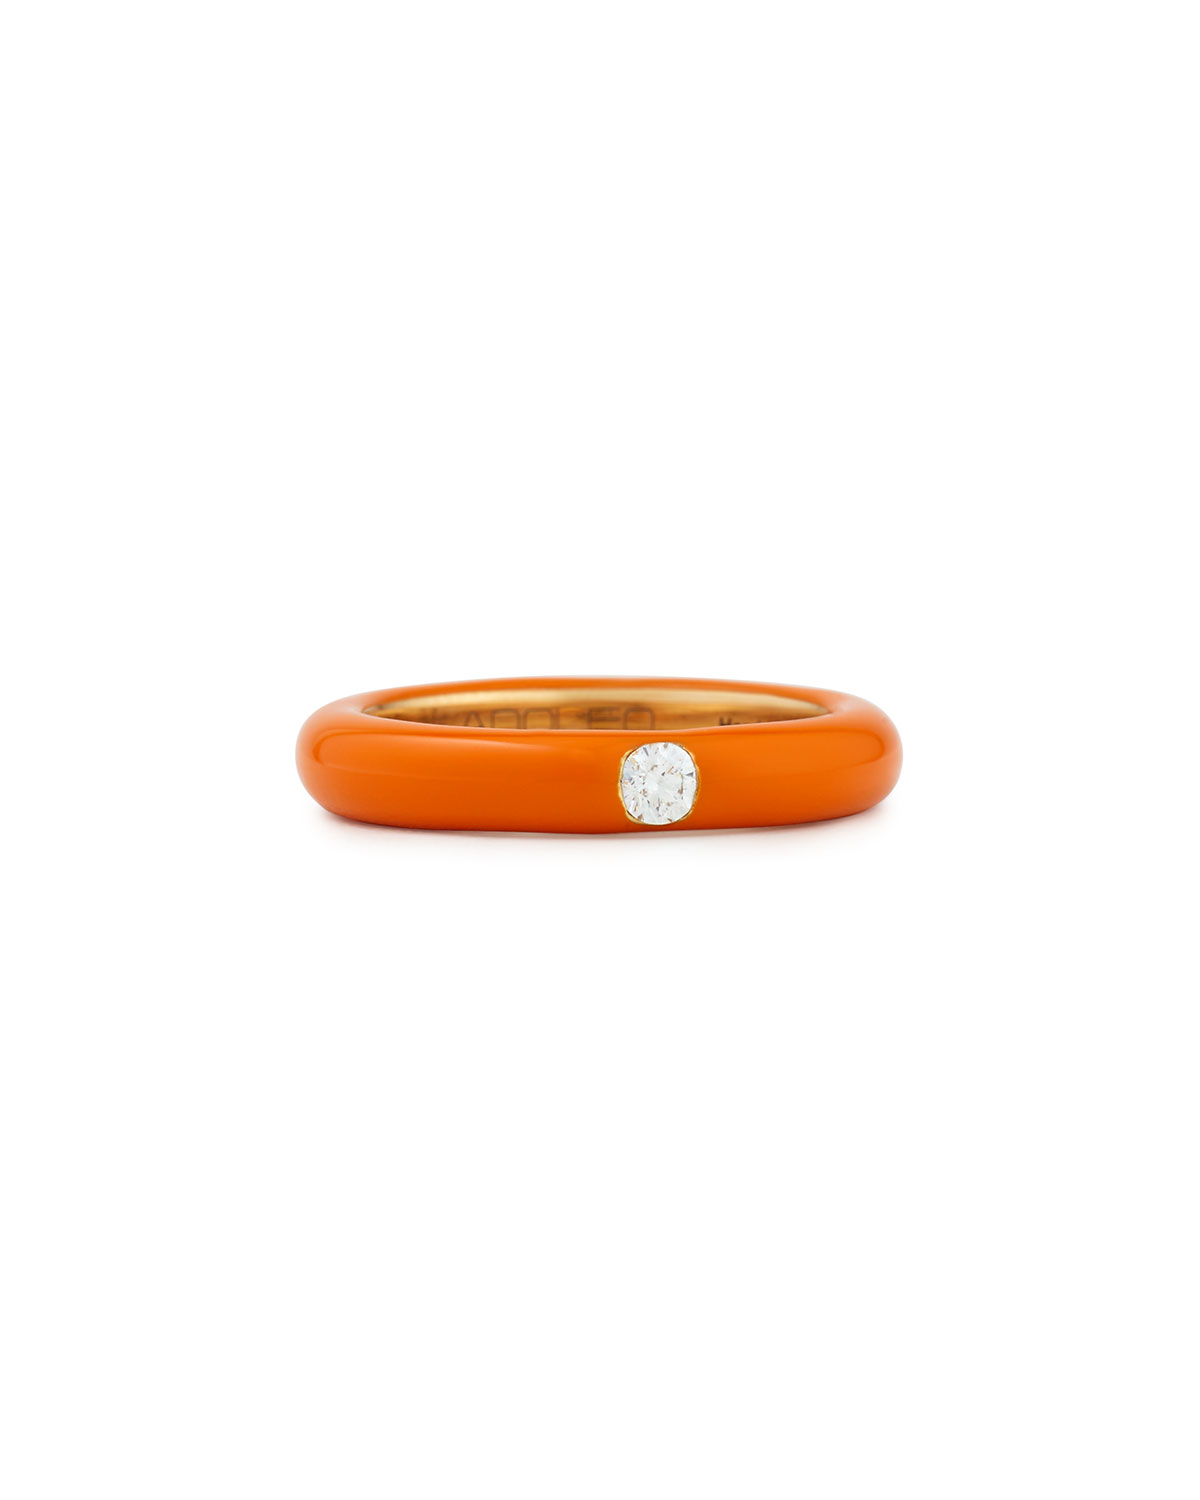 ADOLFO COURRIER Pop Orange Enamel Band Ring With Diamond